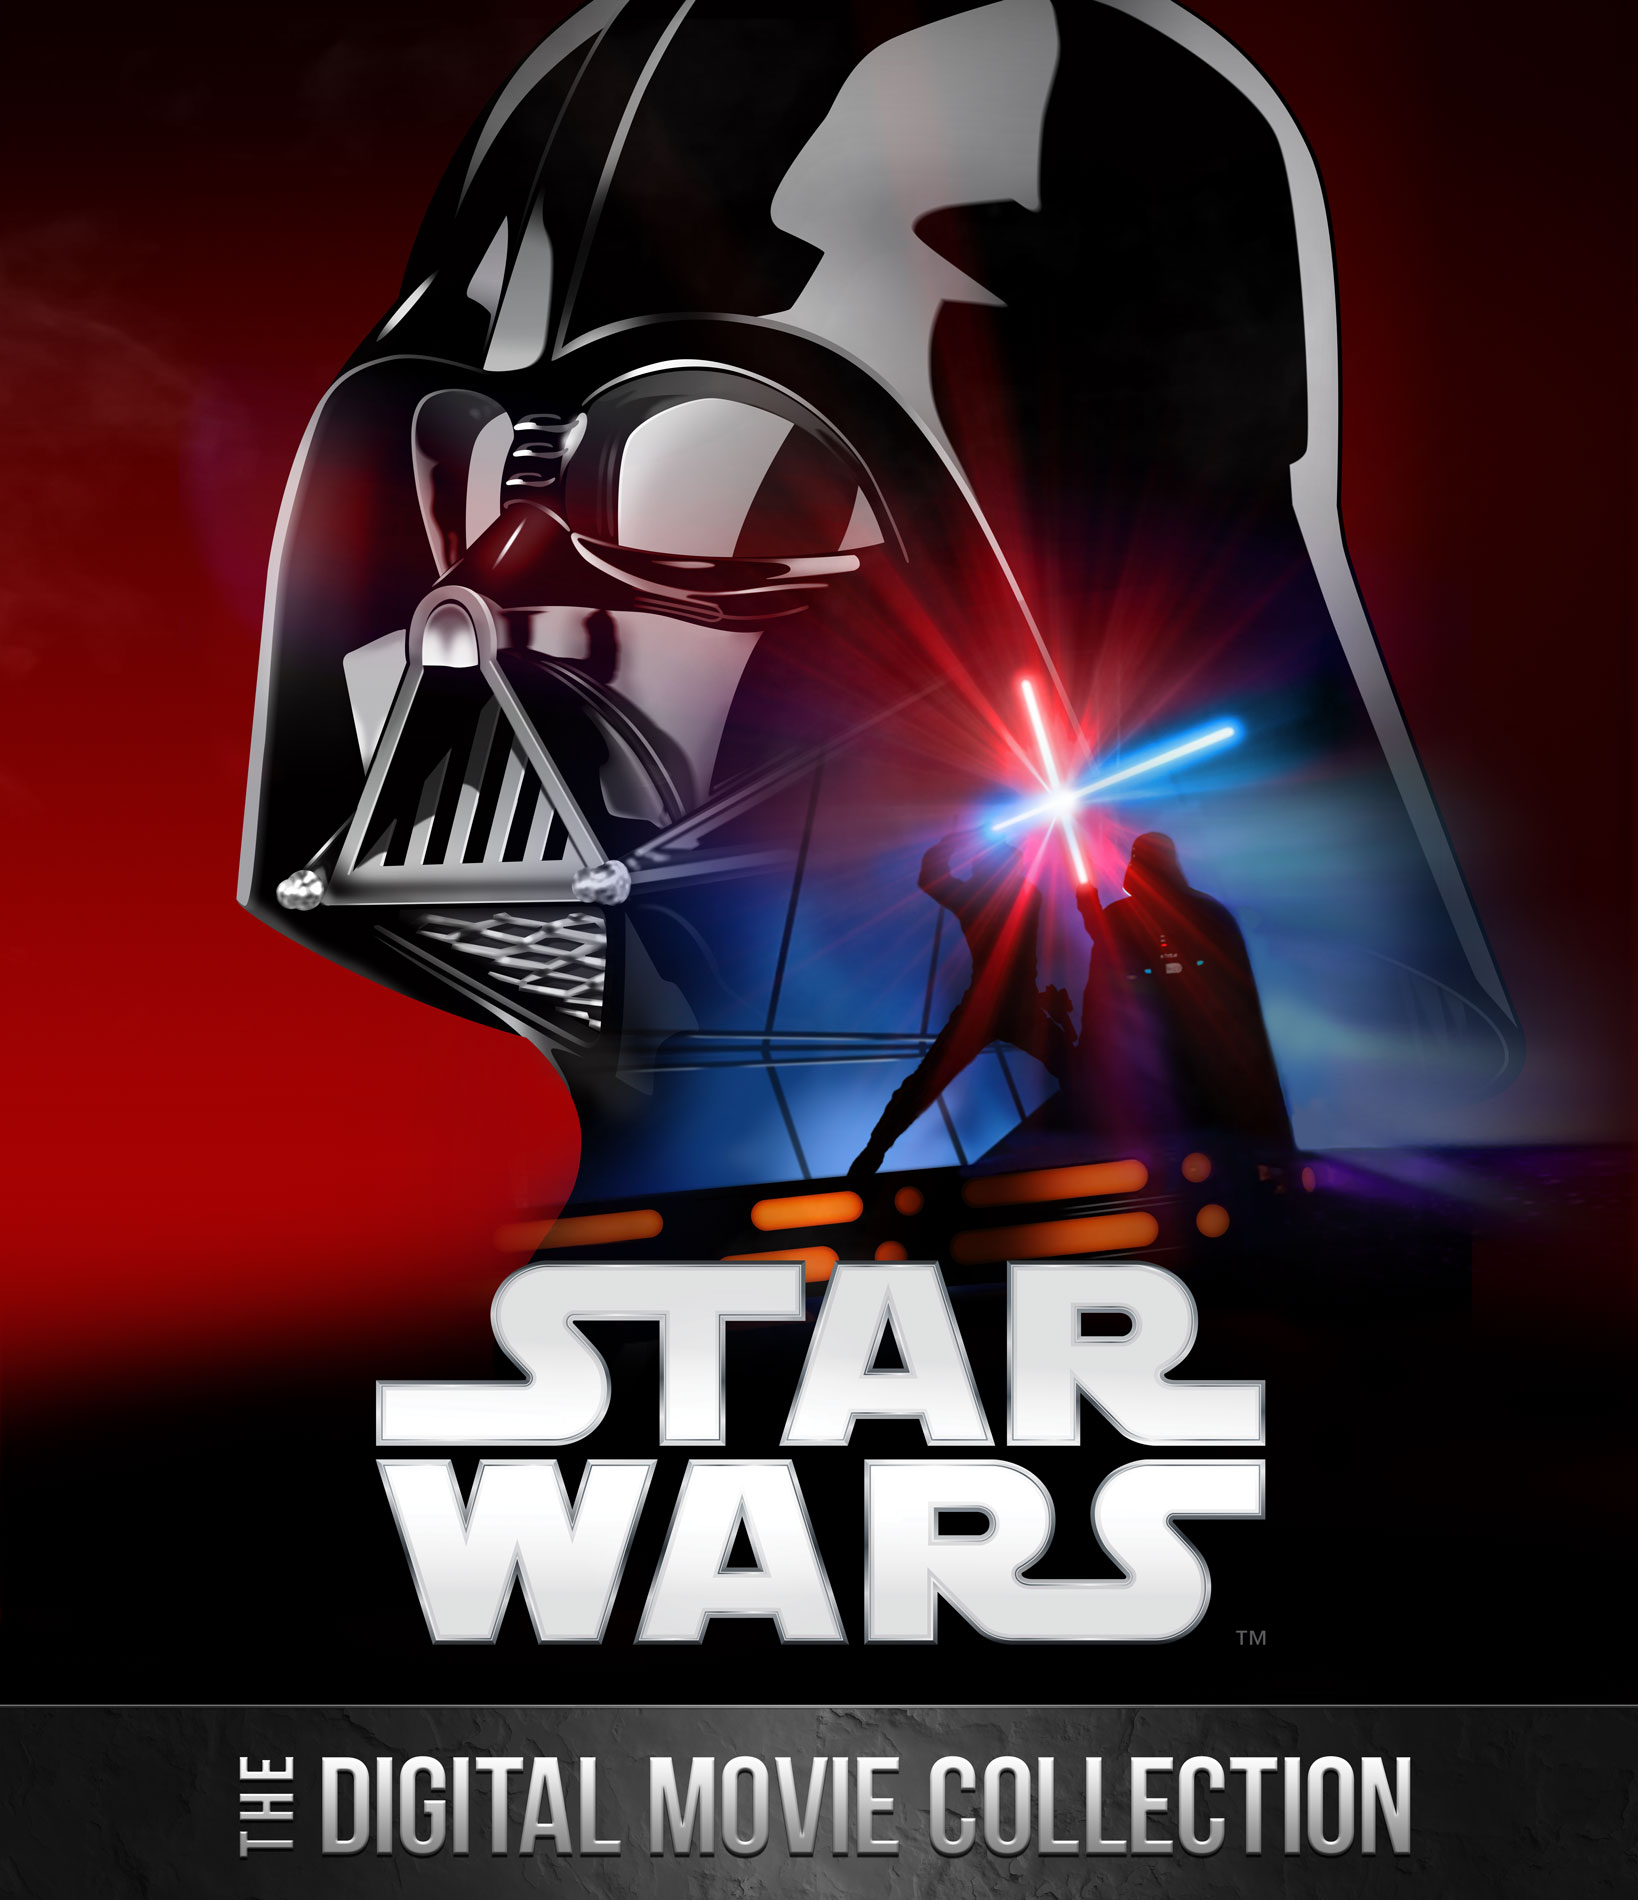 Star Wars: The Digital Movie Collection - Pros and Cons